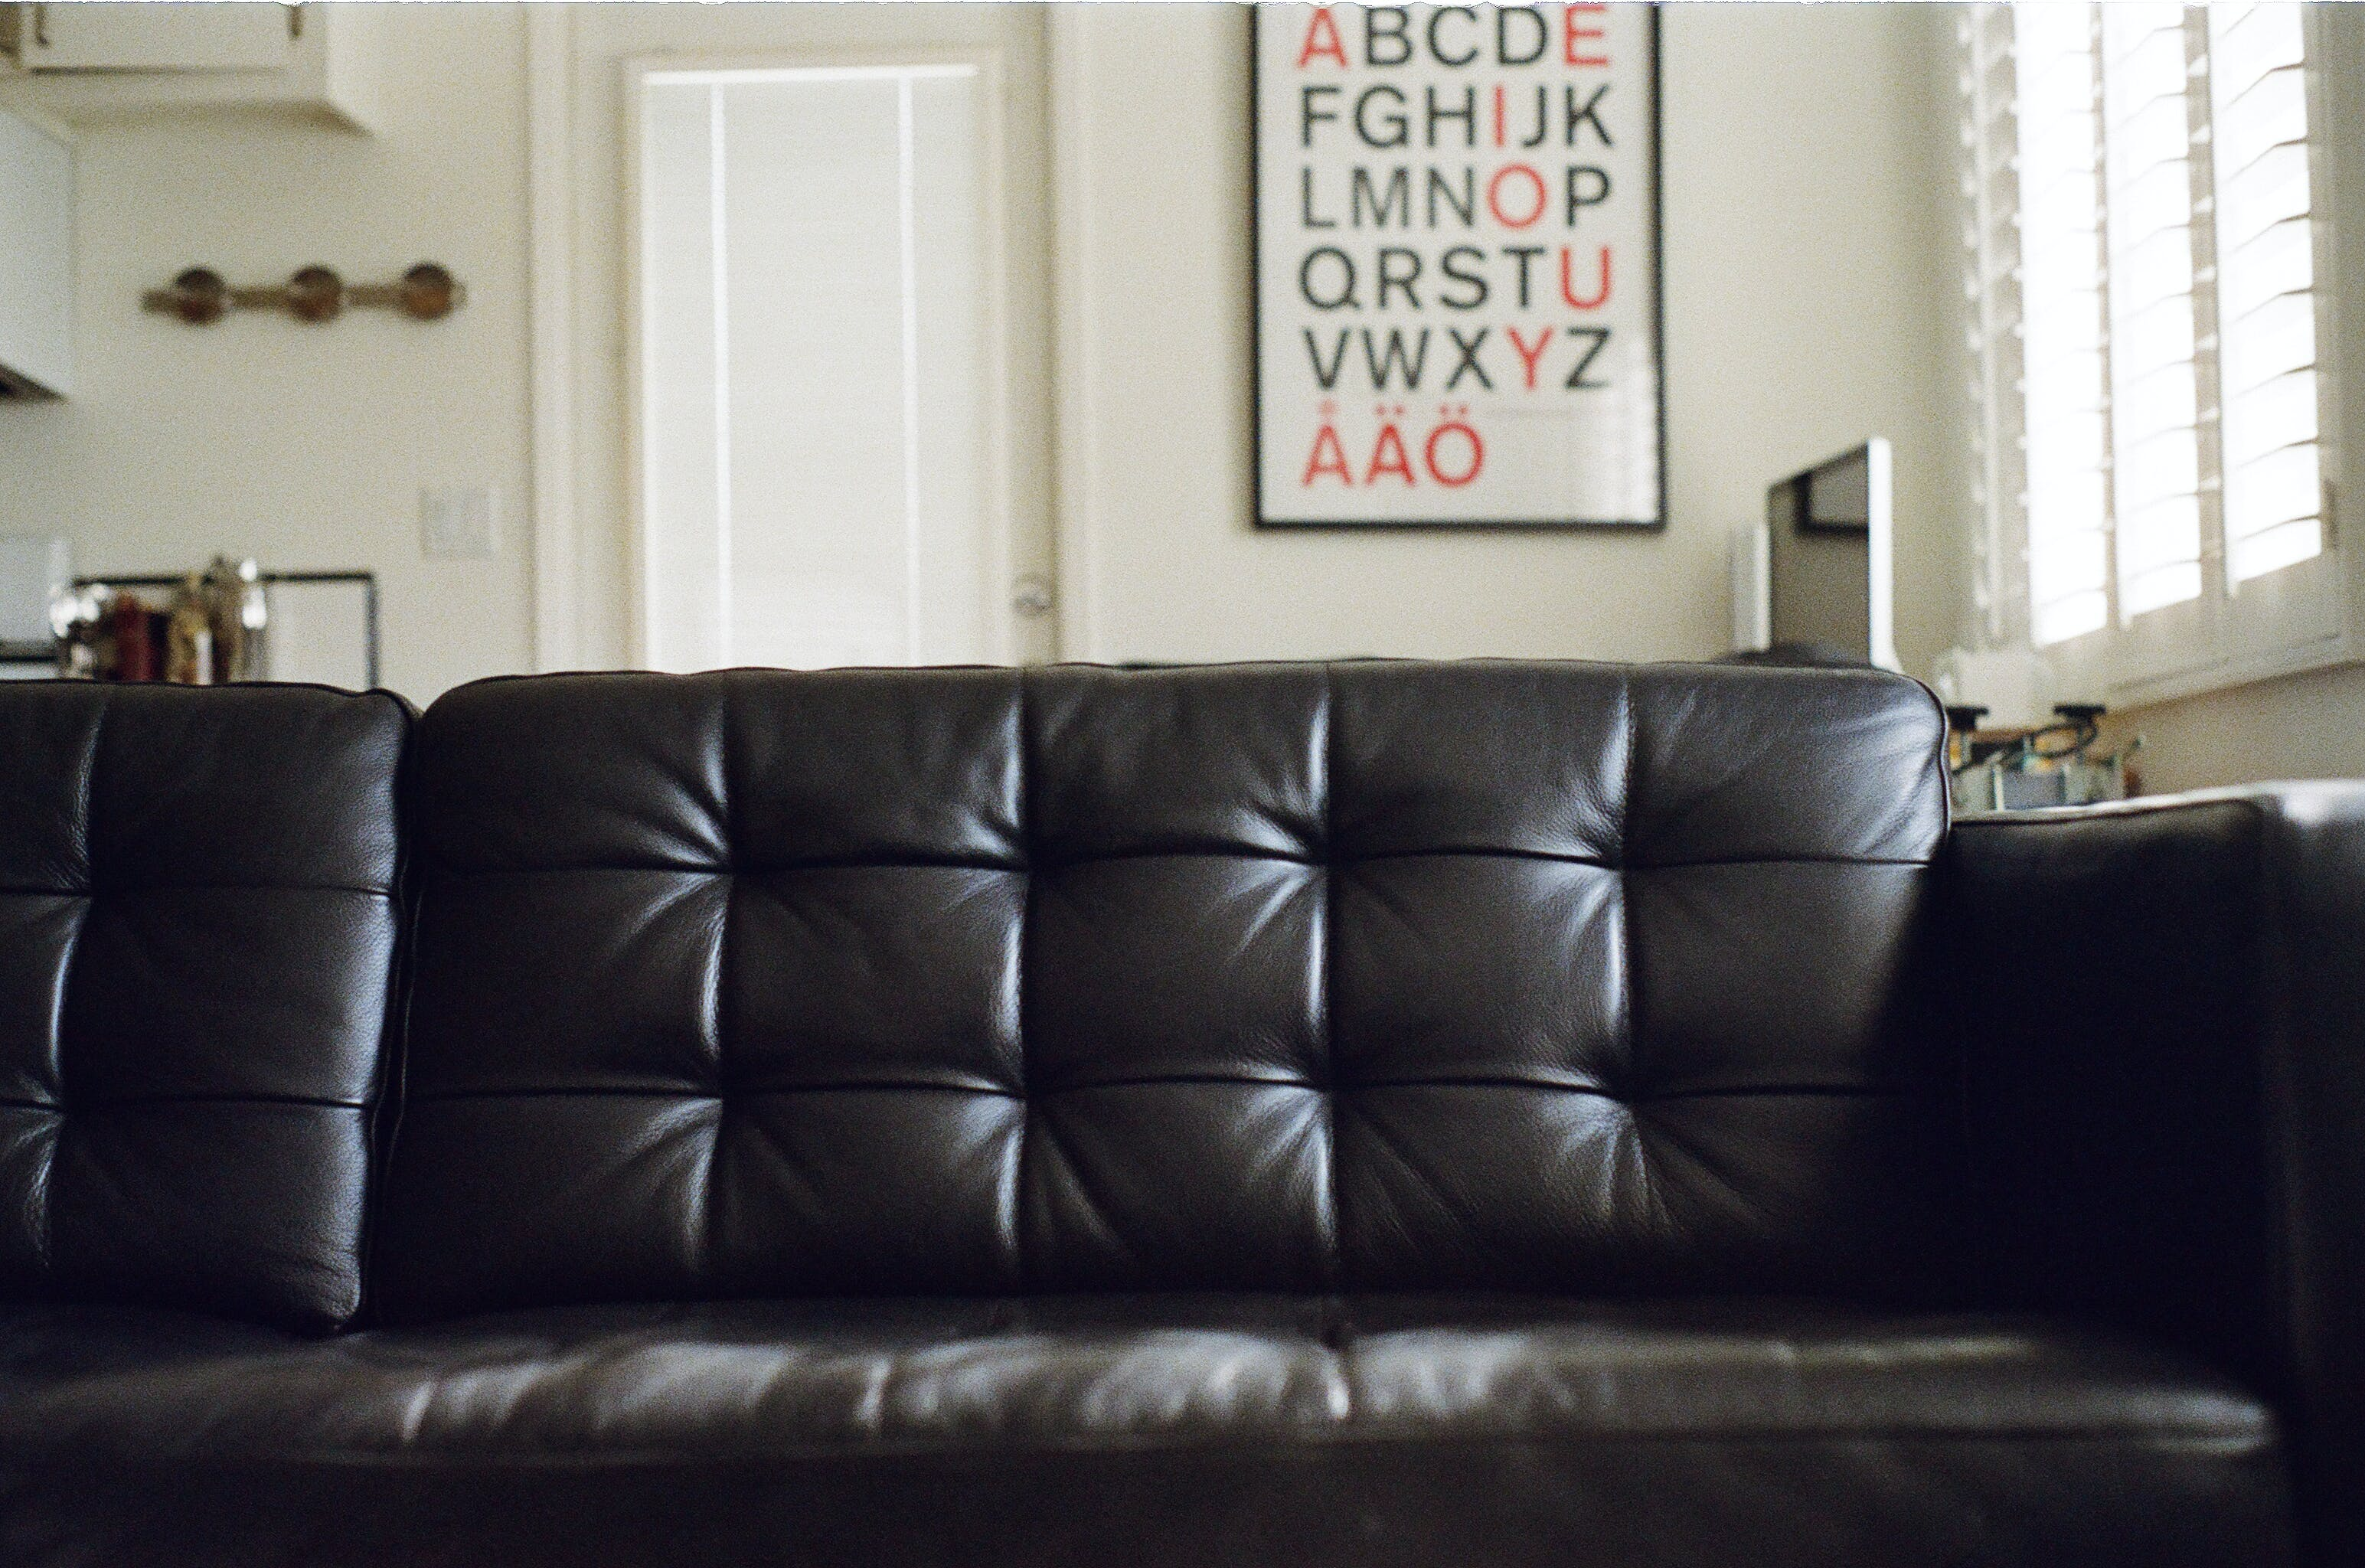 Free stock photo of couch, furniture, living room, sofa